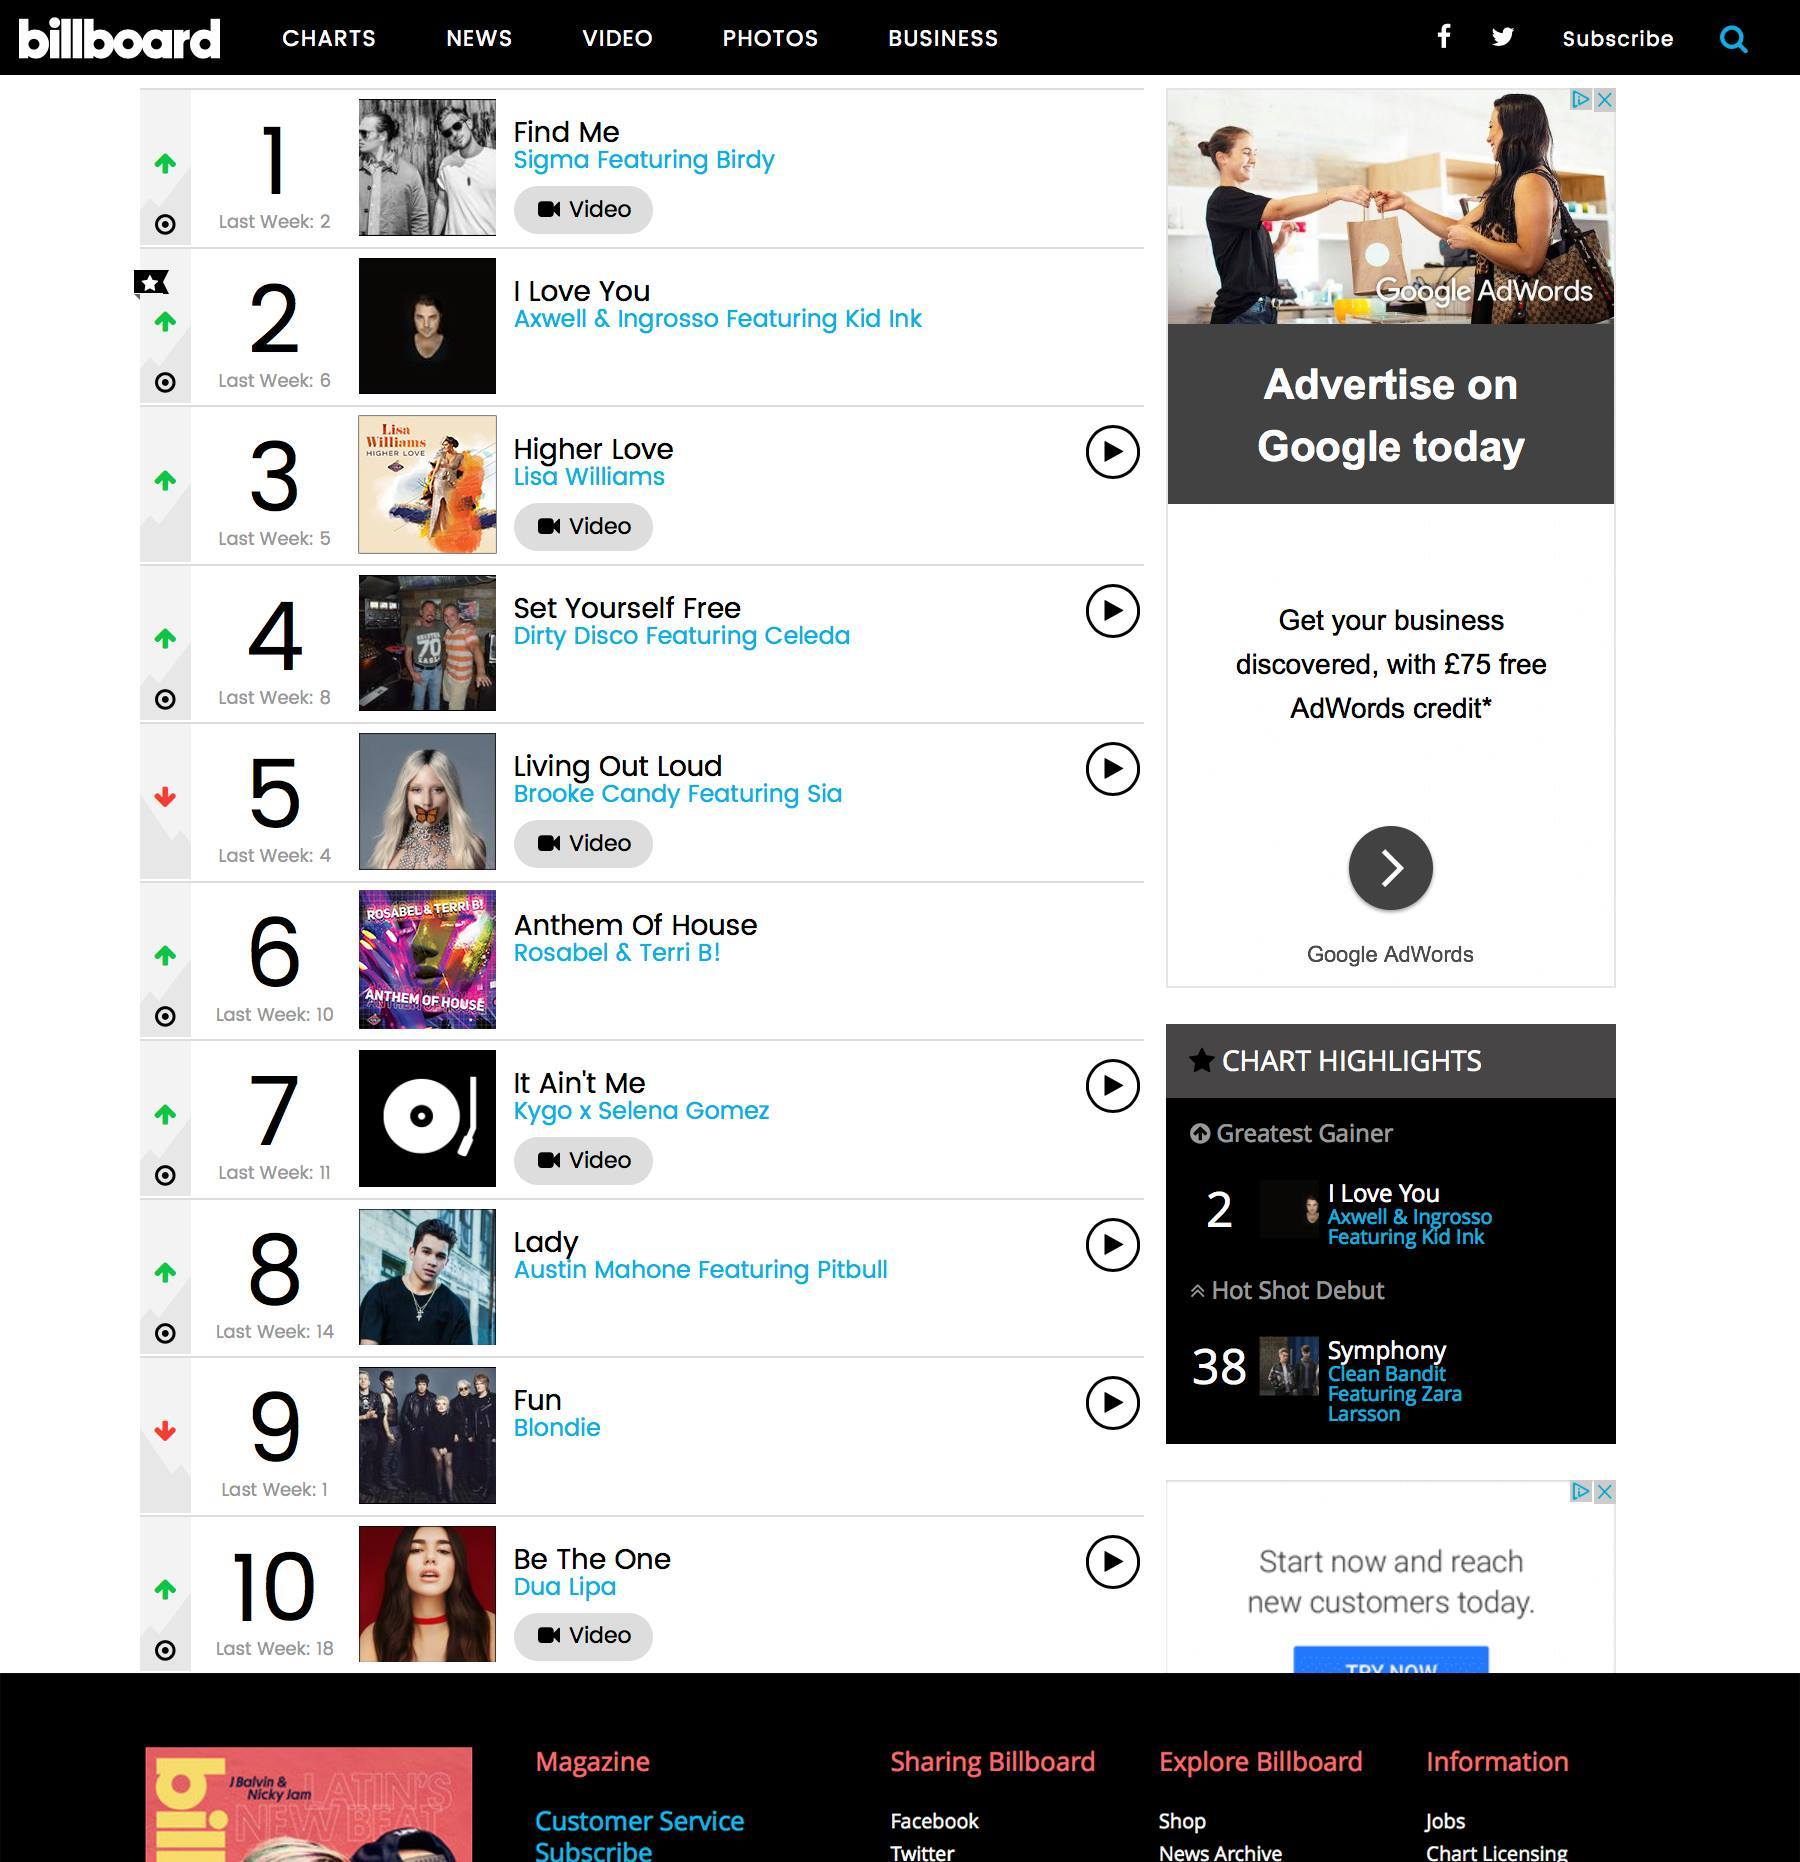 billboard chart sucess